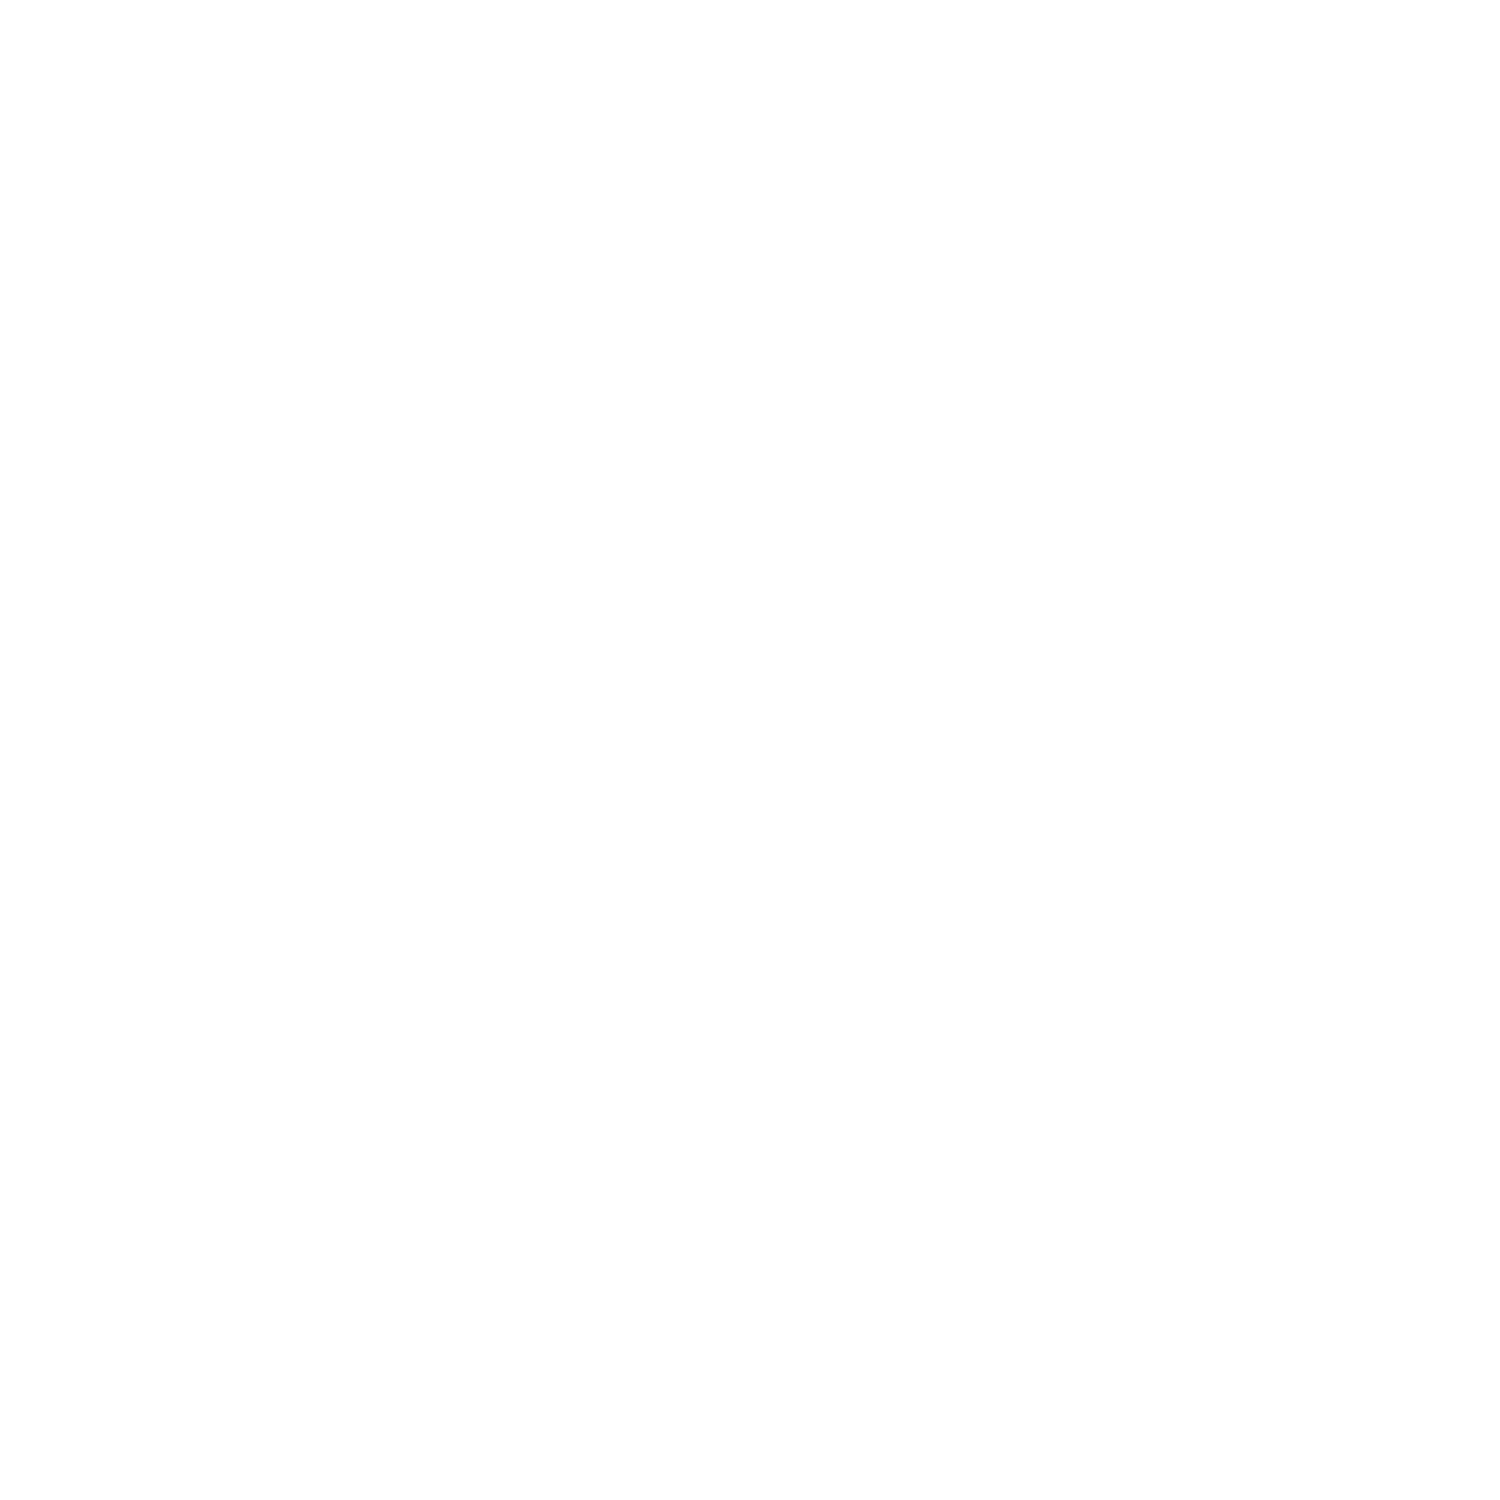 Butchers Alley